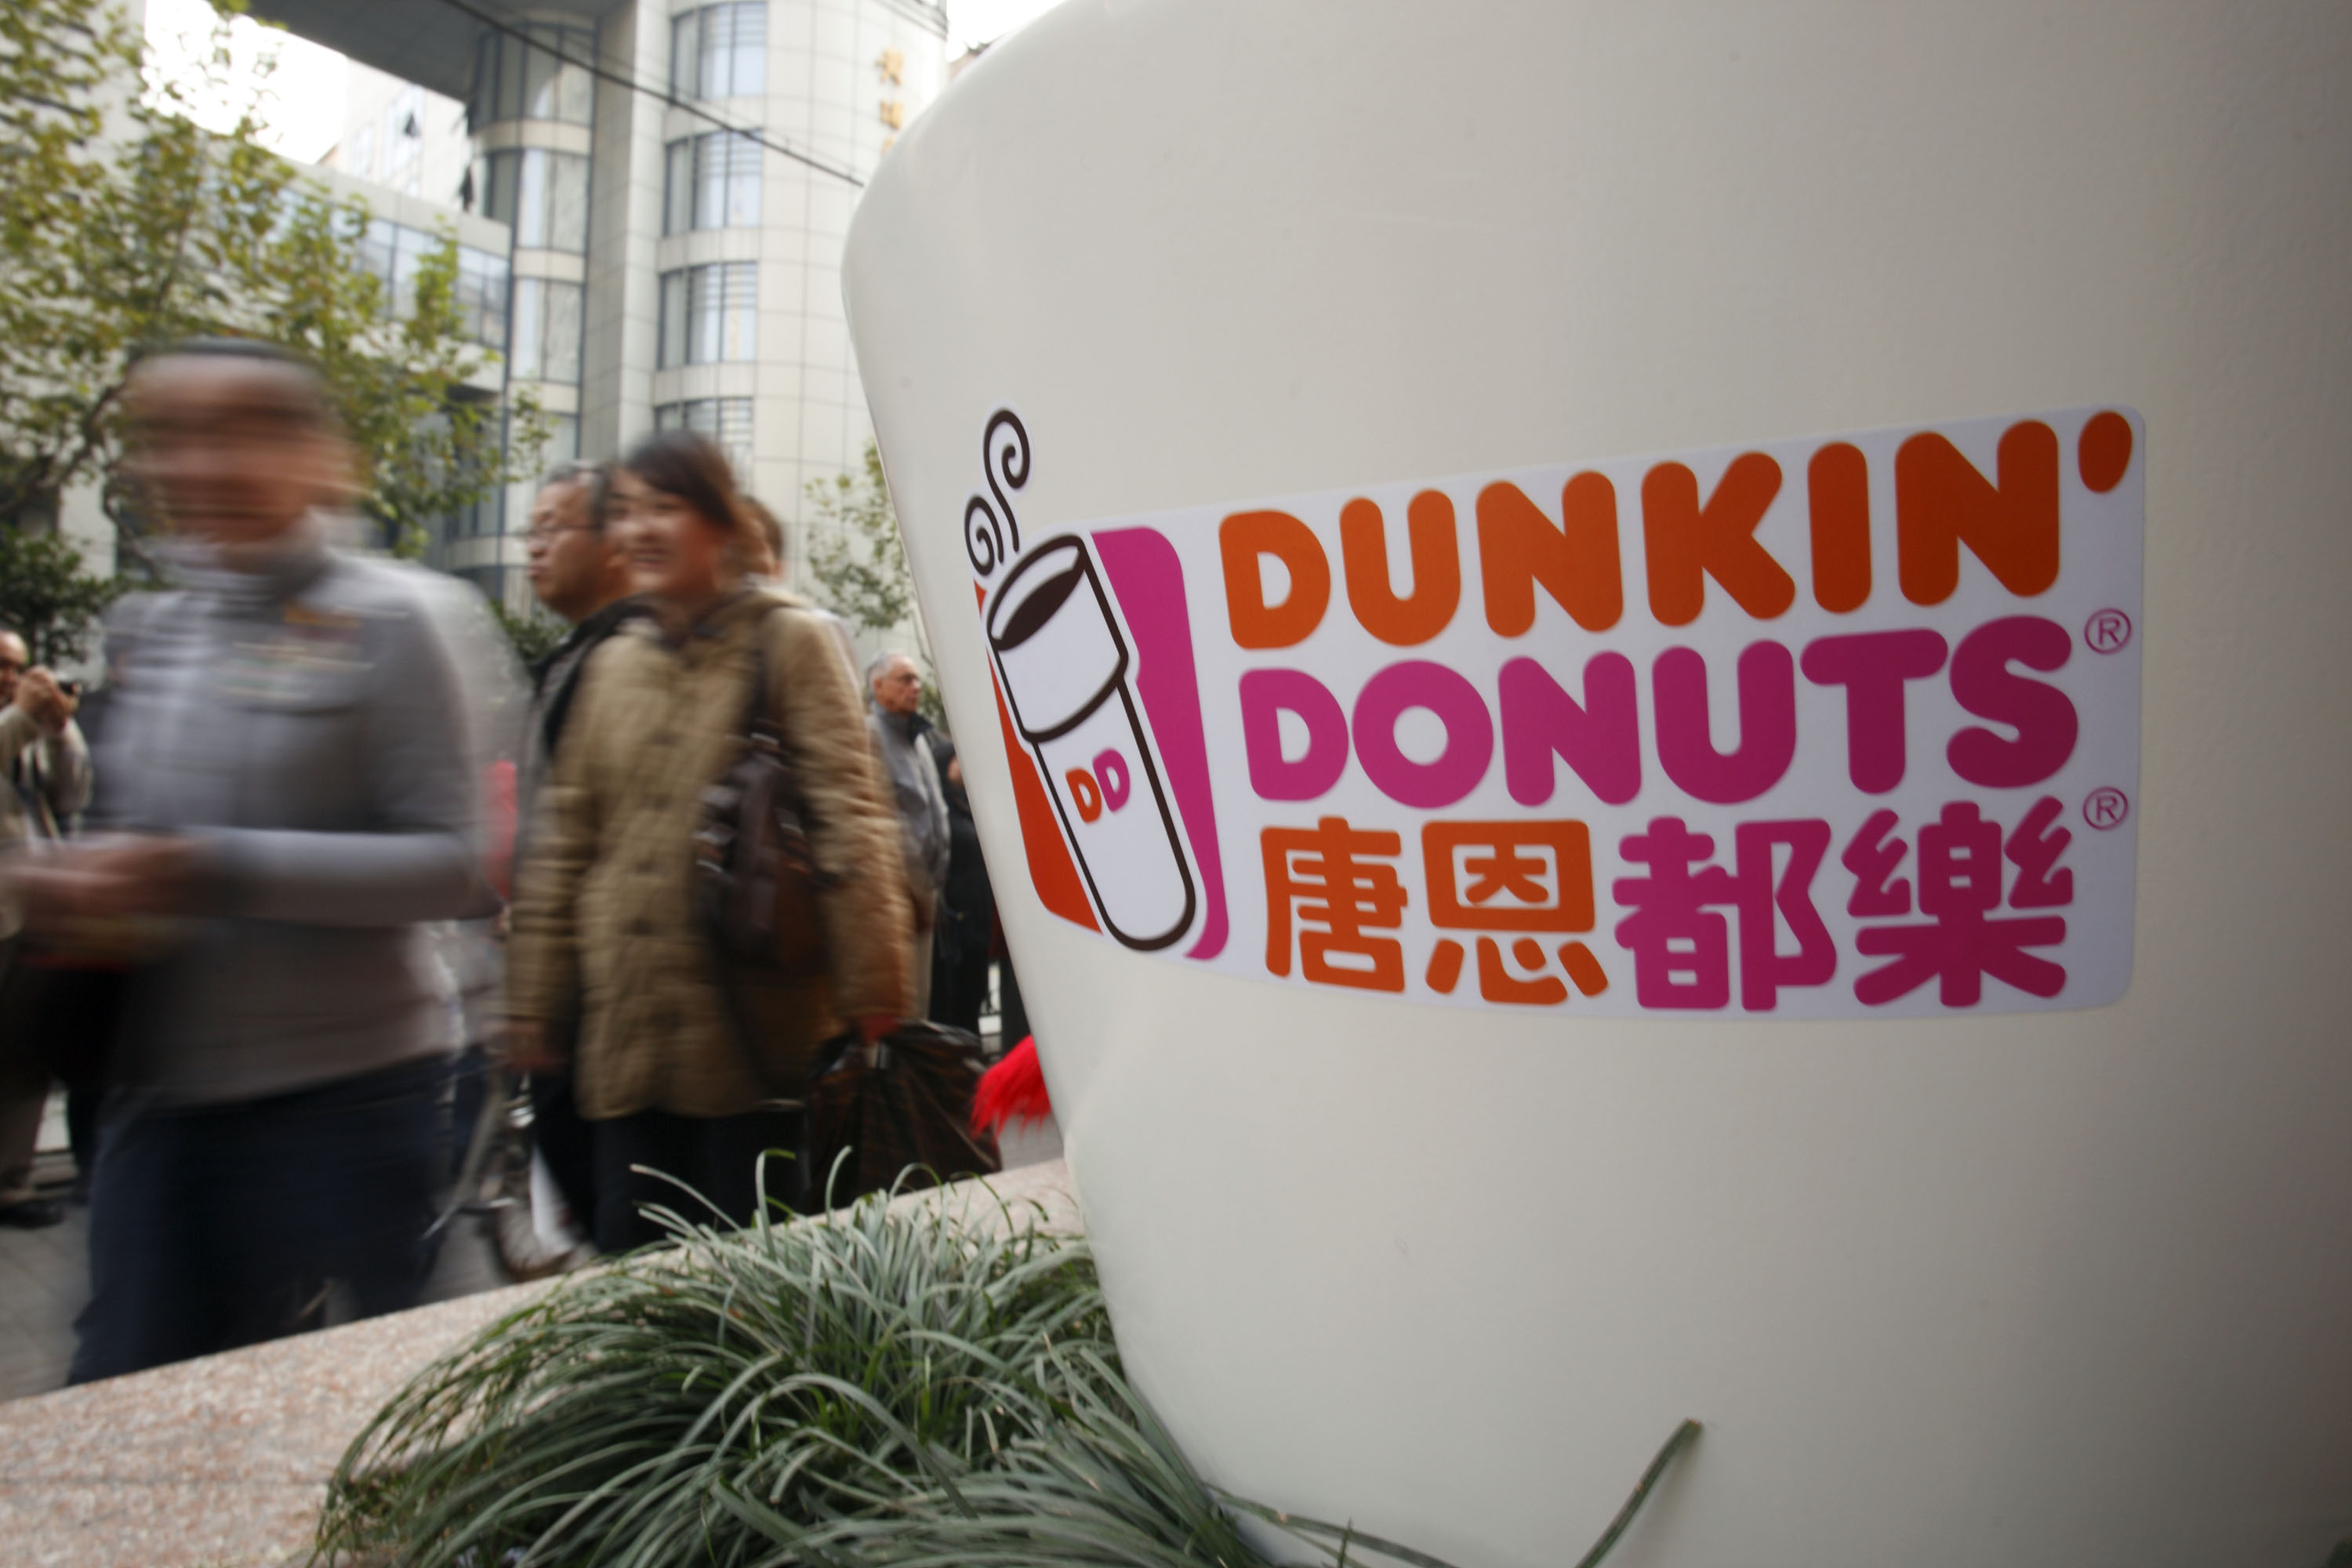 Pedestrians walk past the Dunkin' Donuts logo at the opening ceremony of the company's flagship store in Shanghai, China, on Nov. 20, 2008.